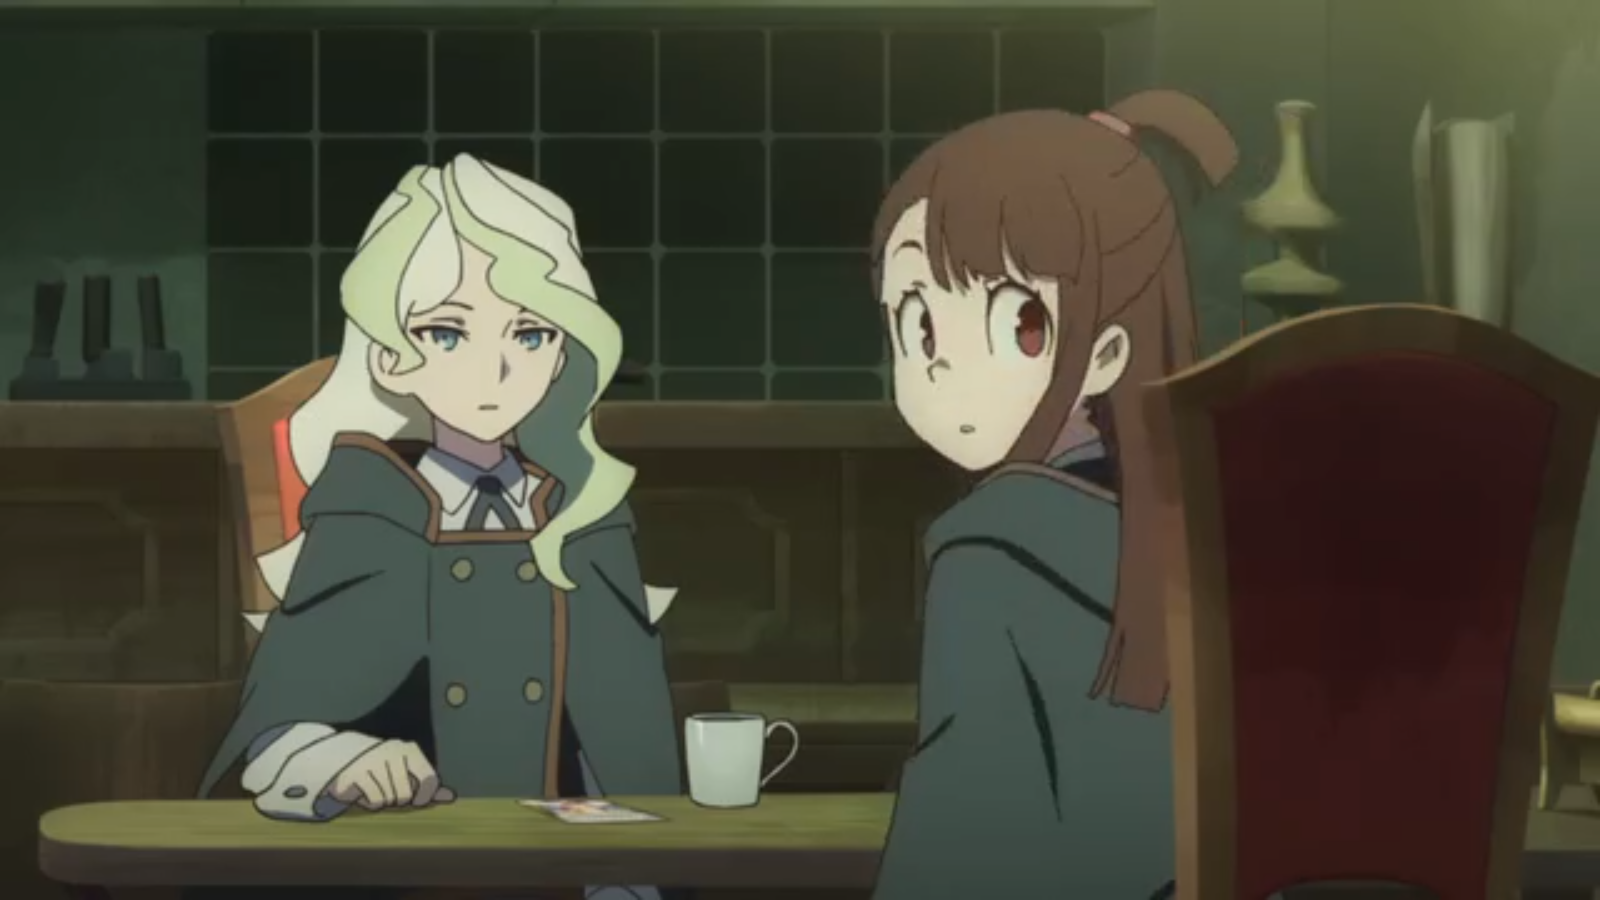 Featured image for Little Witch Academia: A Good Trigger anime?